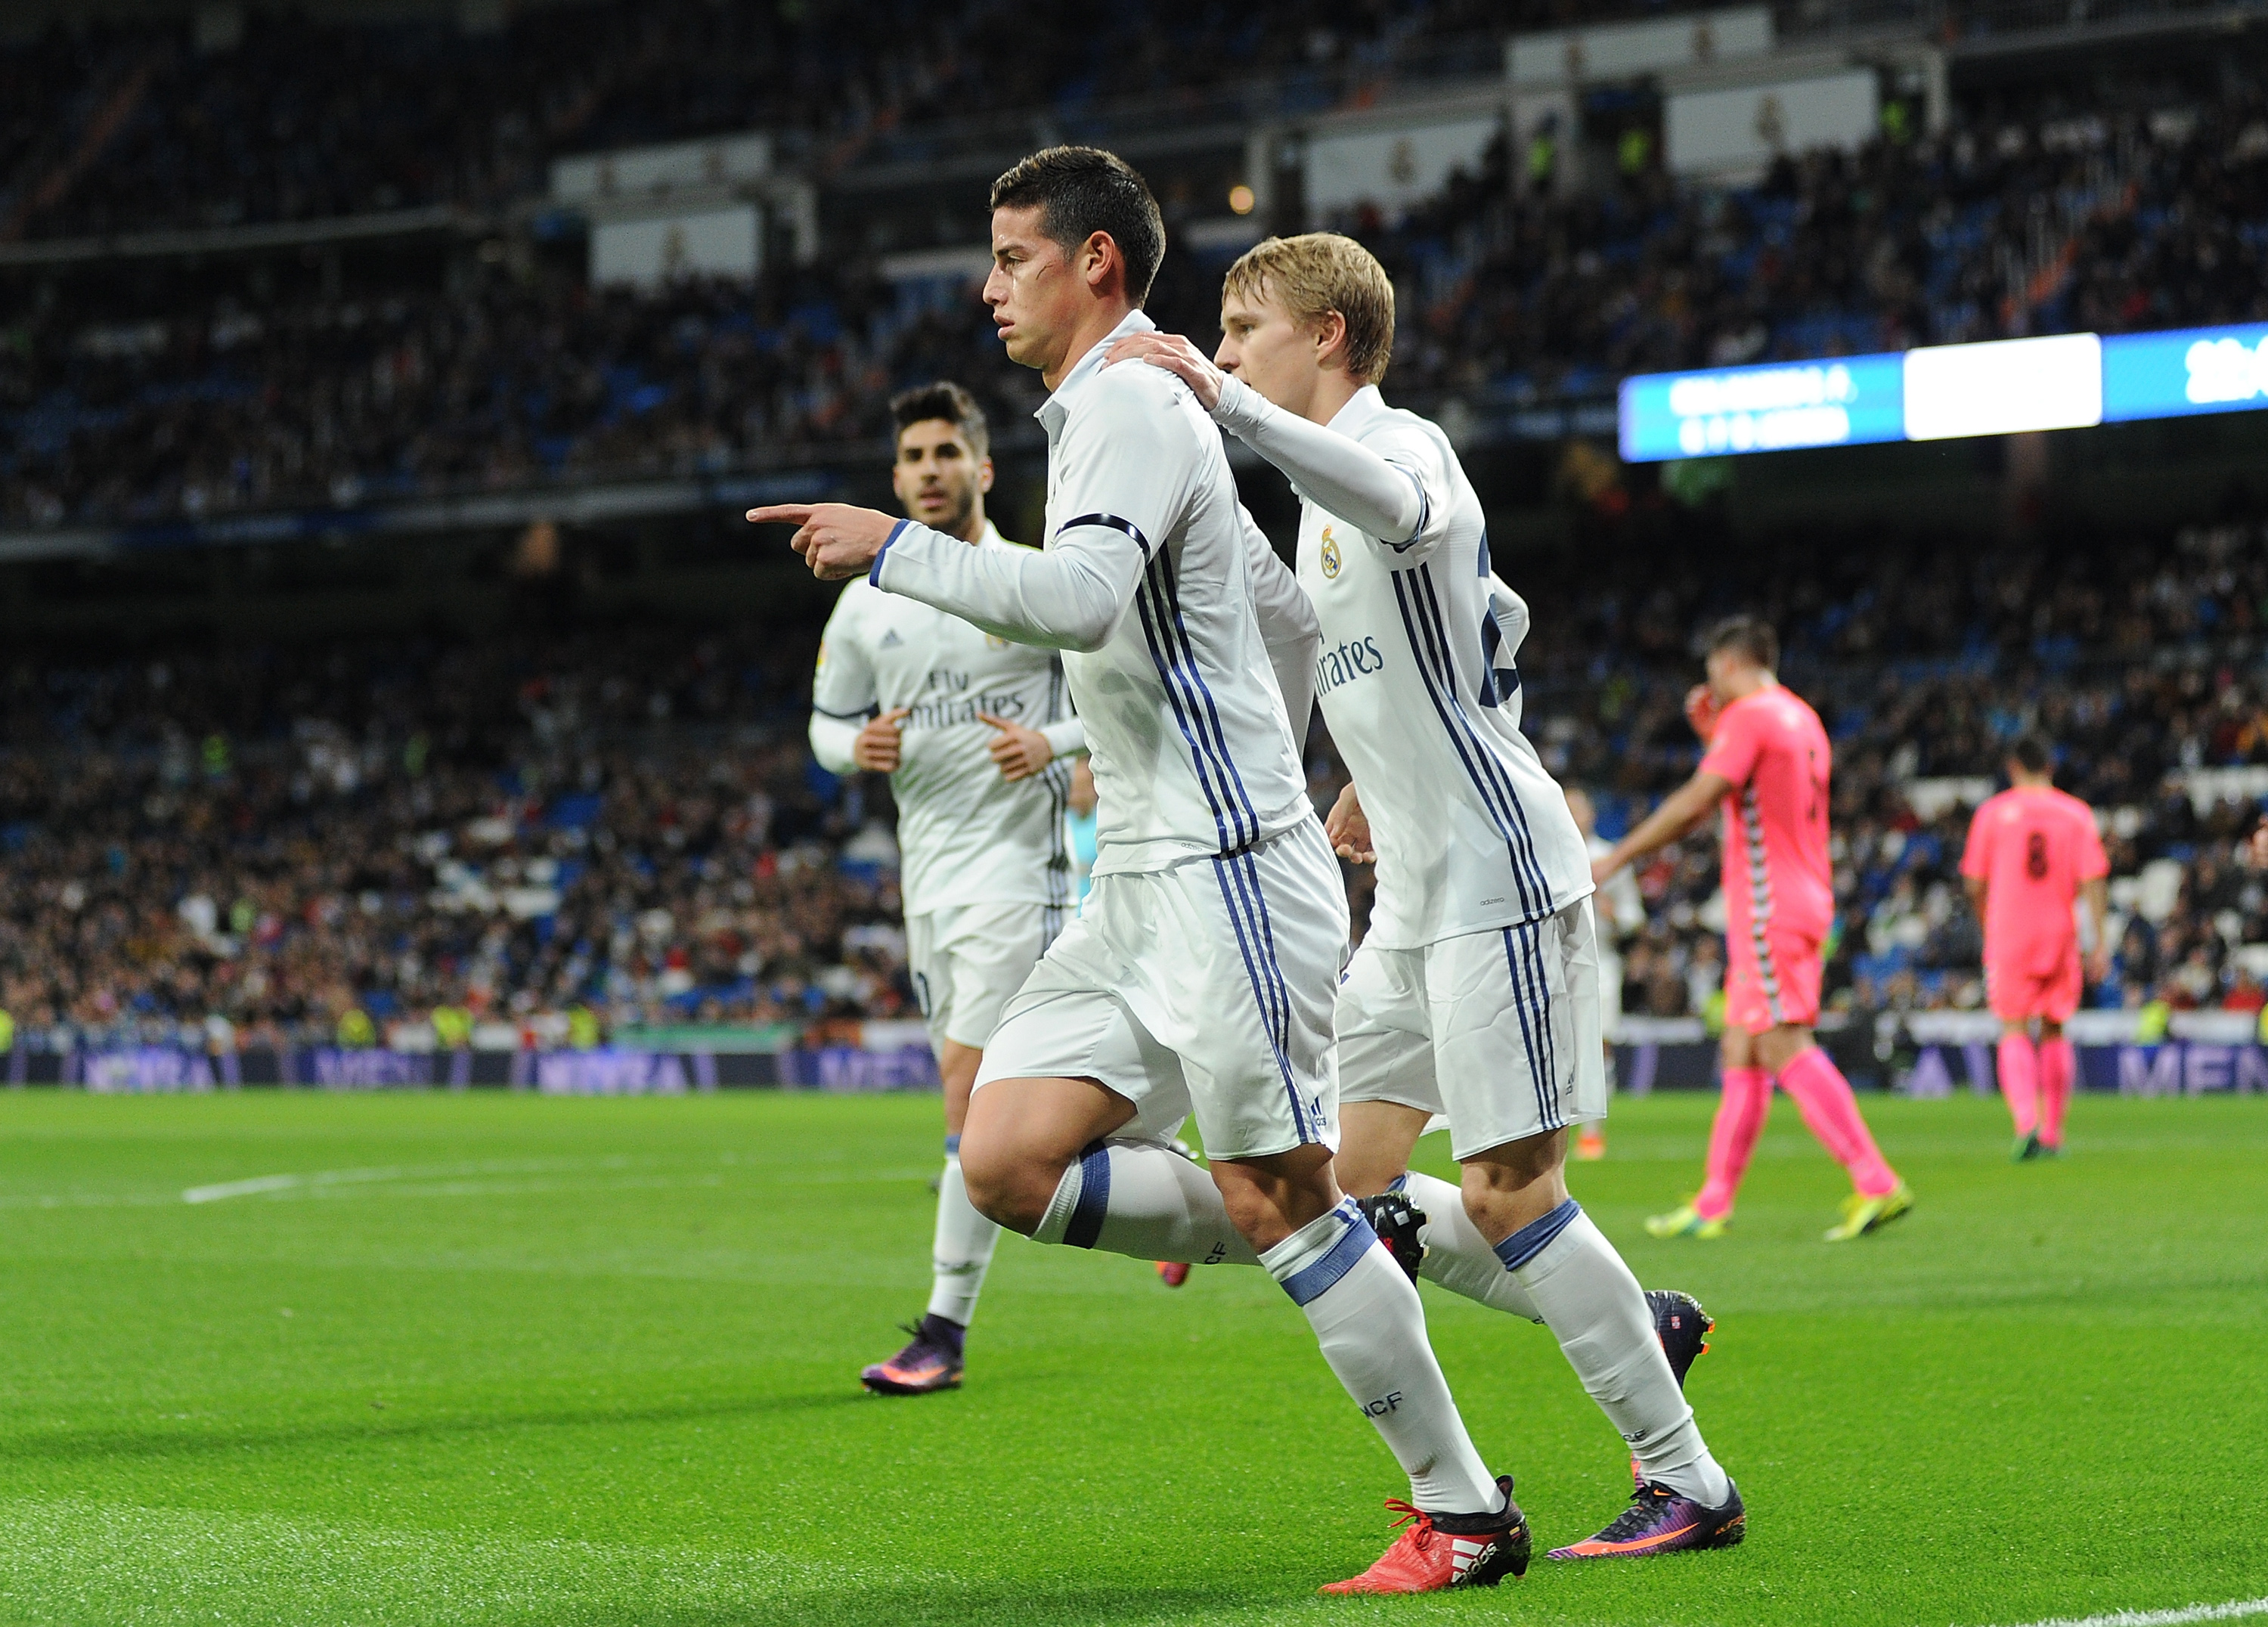 Enzo Zidane makes the flawless  start to his Real Madrid career